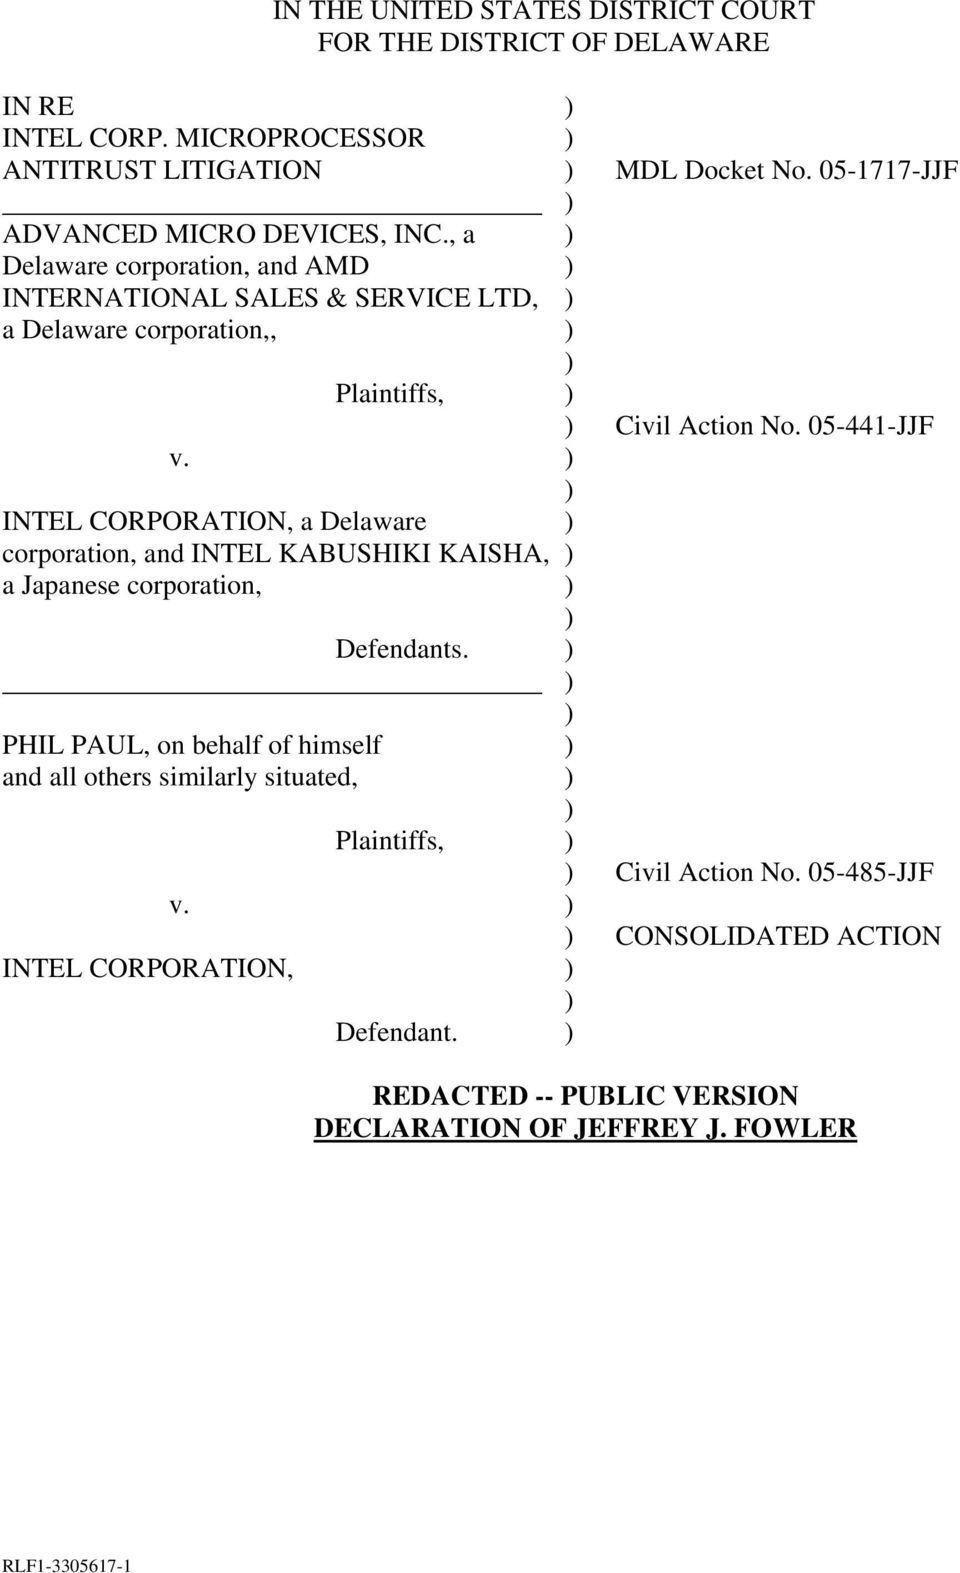 Plaintiffs, INTEL CORPORATION, a Delaware corporation, and INTEL KABUSHIKI KAISHA, a Japanese corporation, PHIL PAUL, on behalf of himself and all others